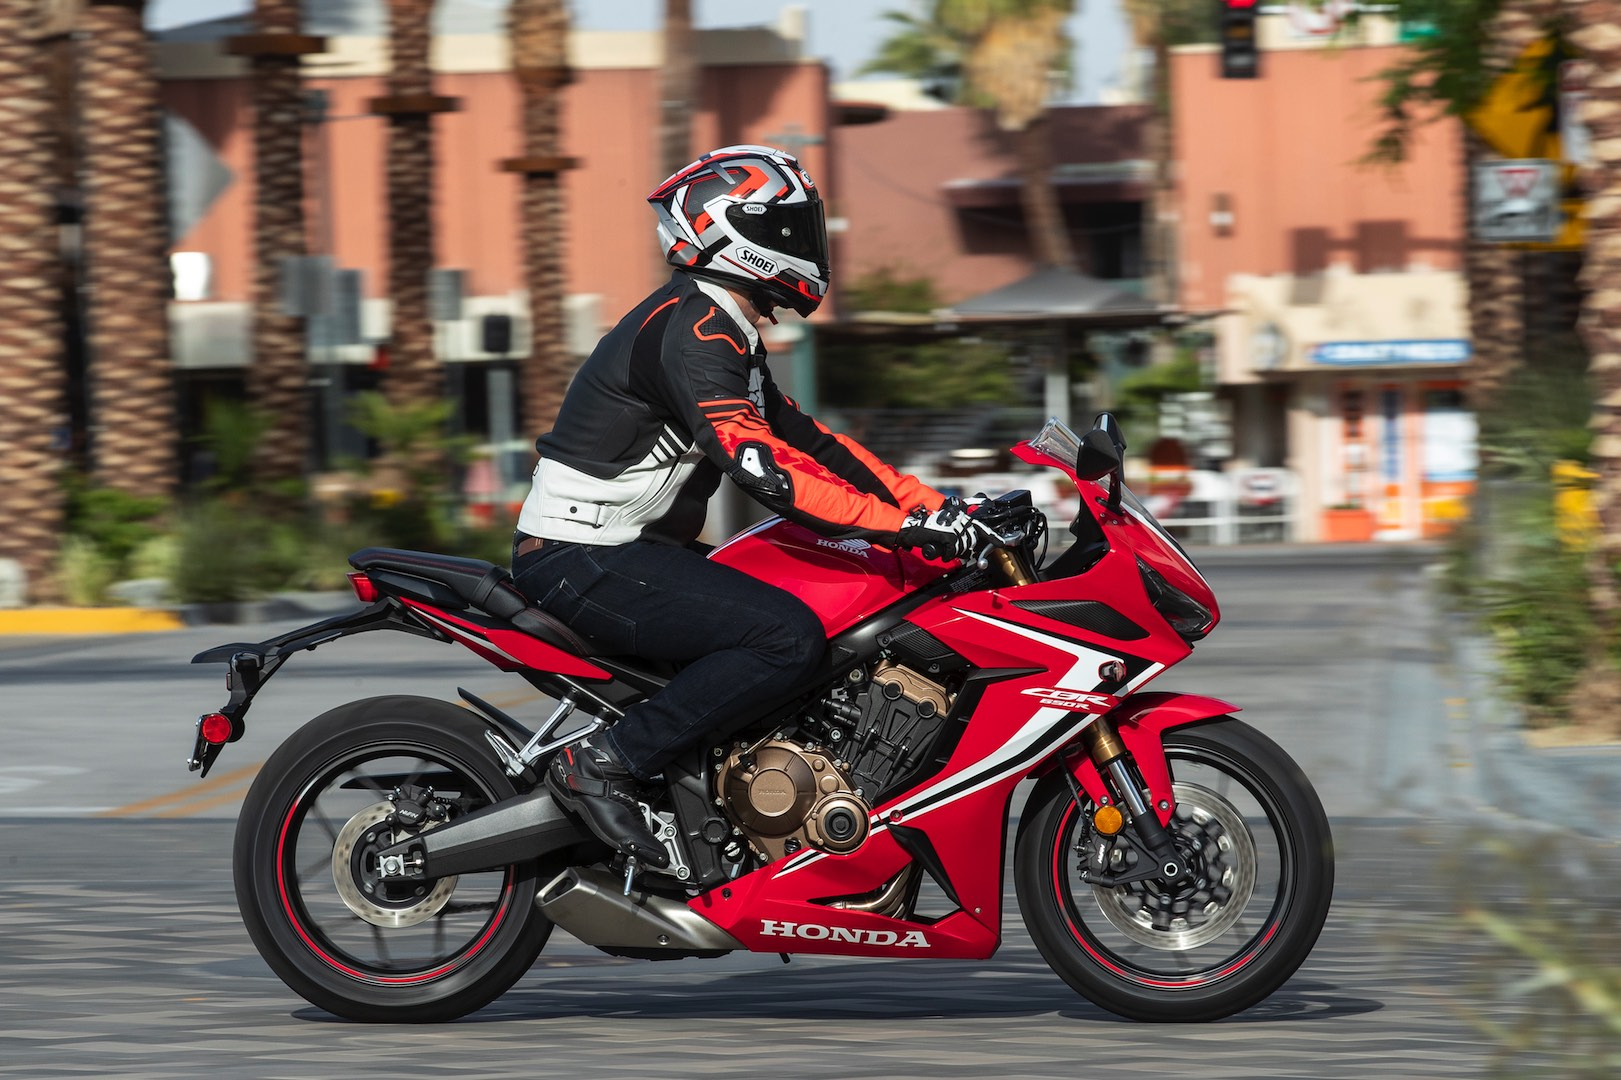 2019 Honda CBR650R Review (14 Fast Facts